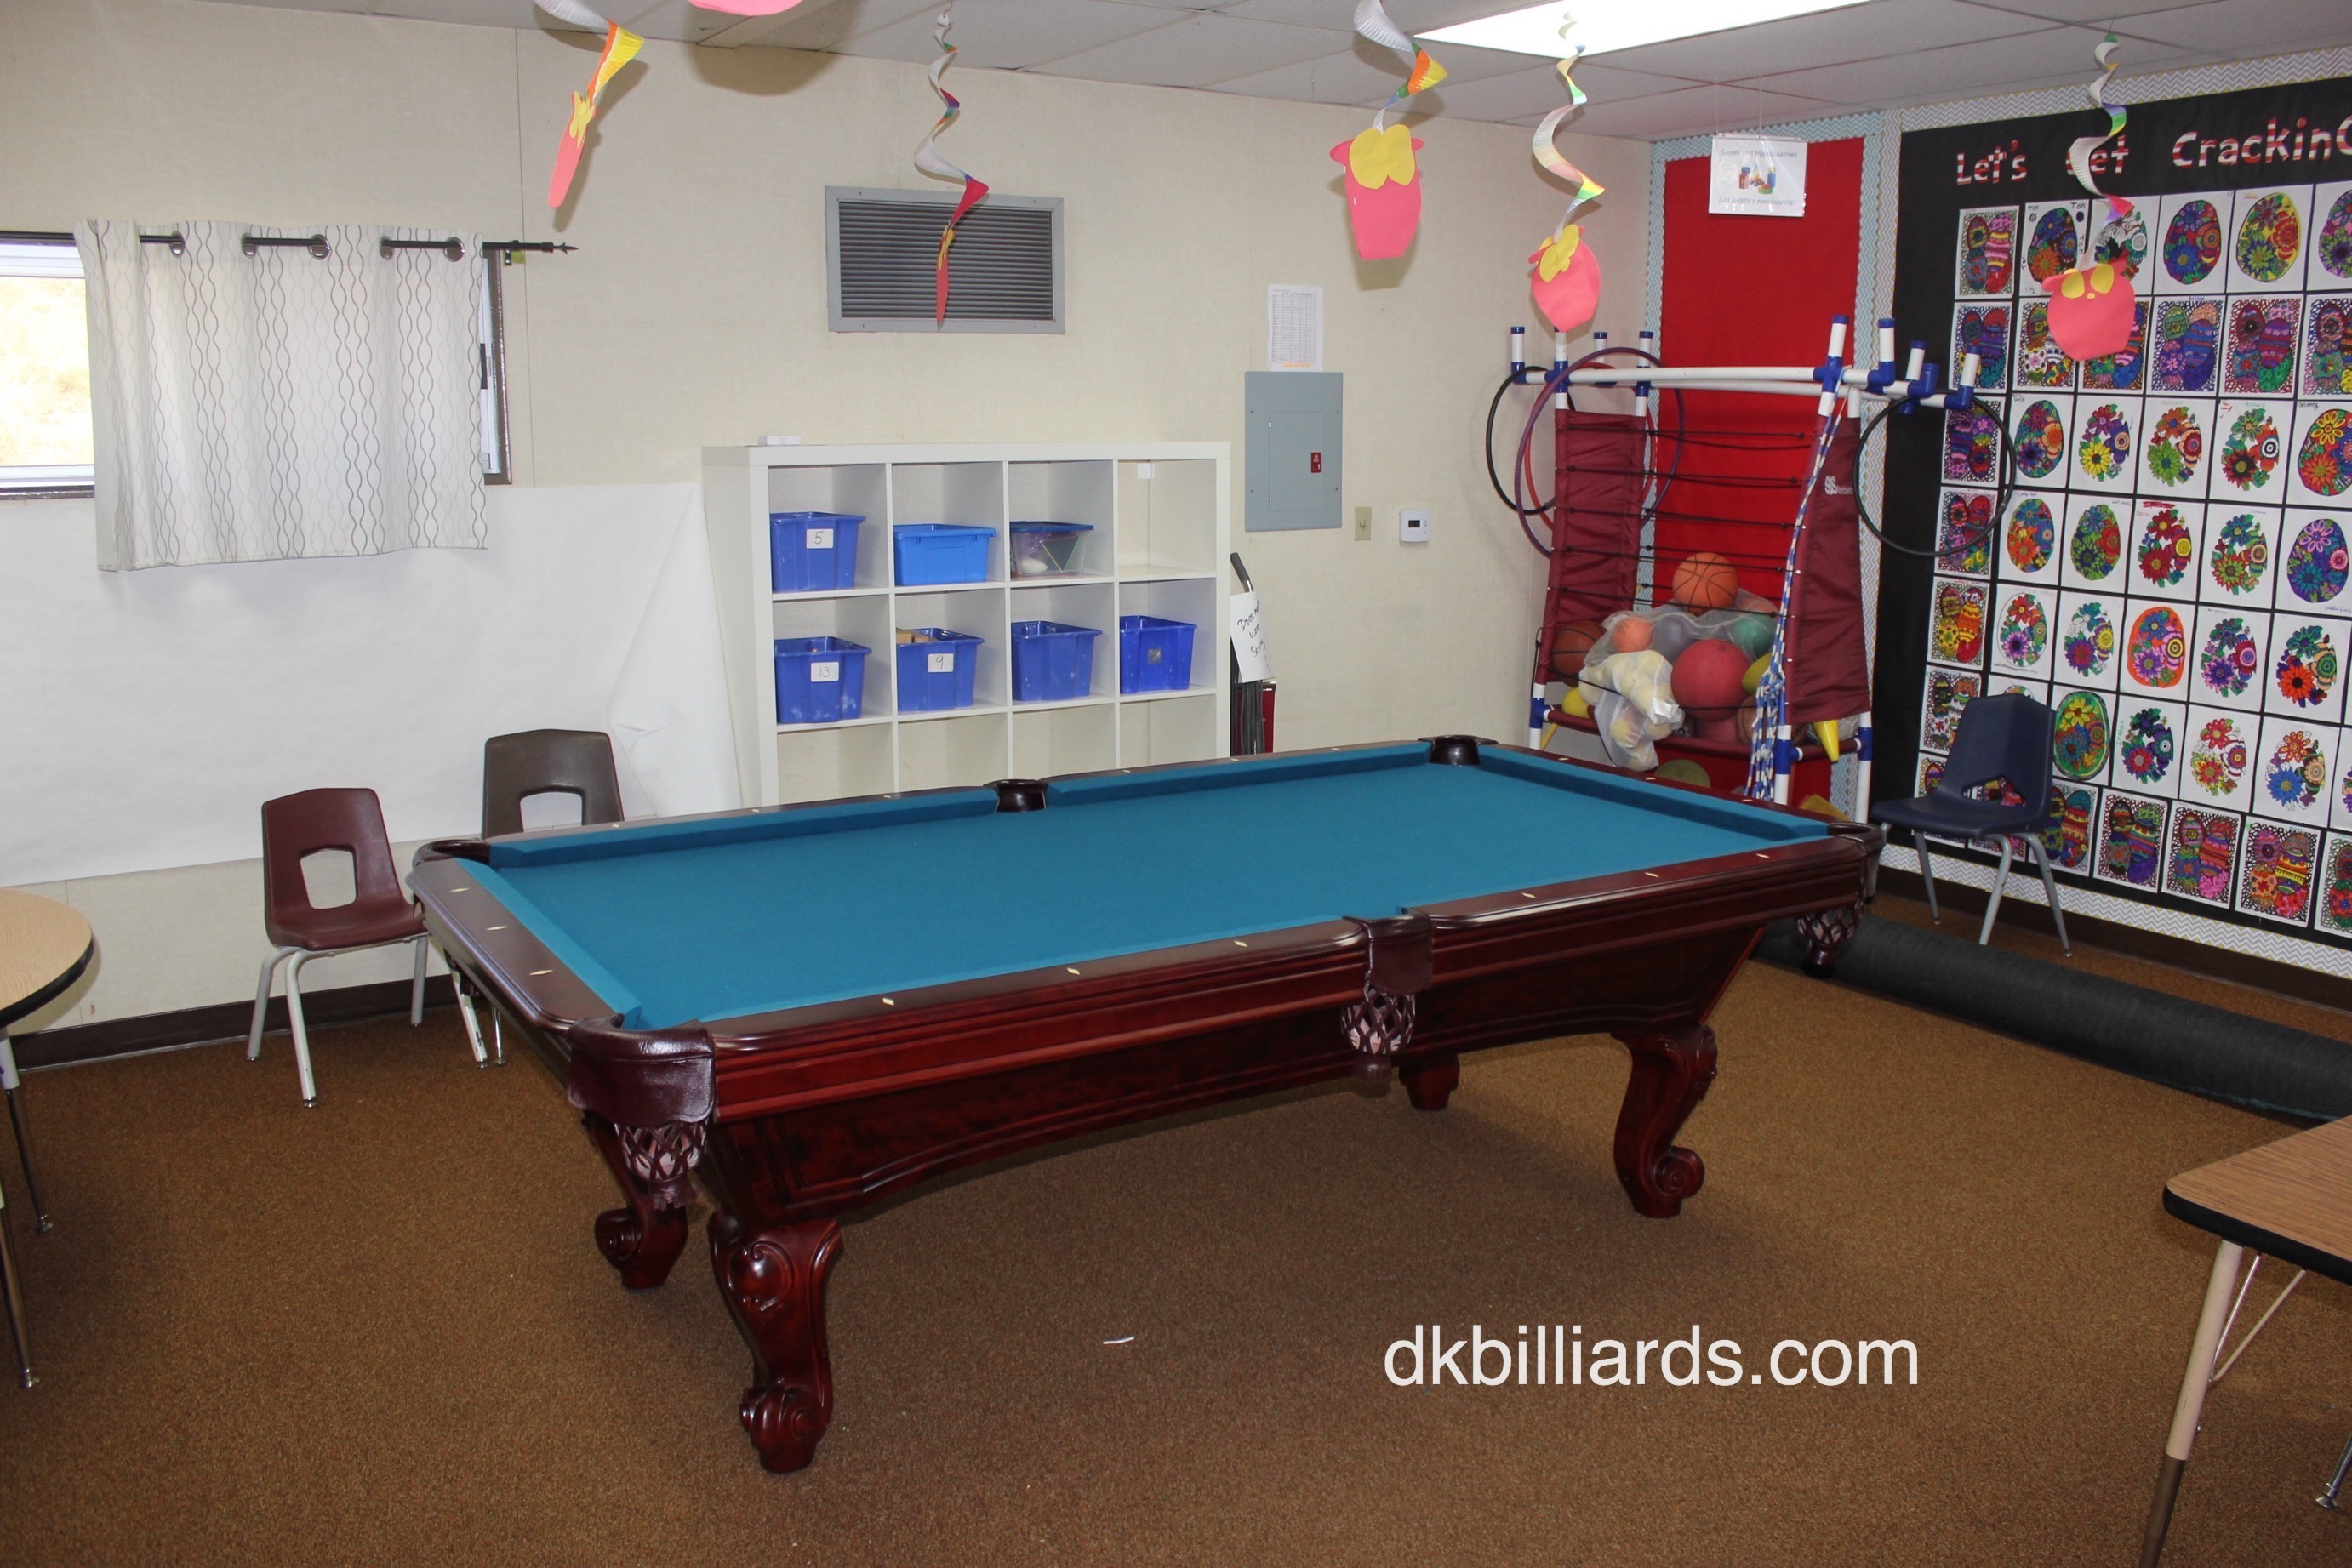 Donating Your Pool Table